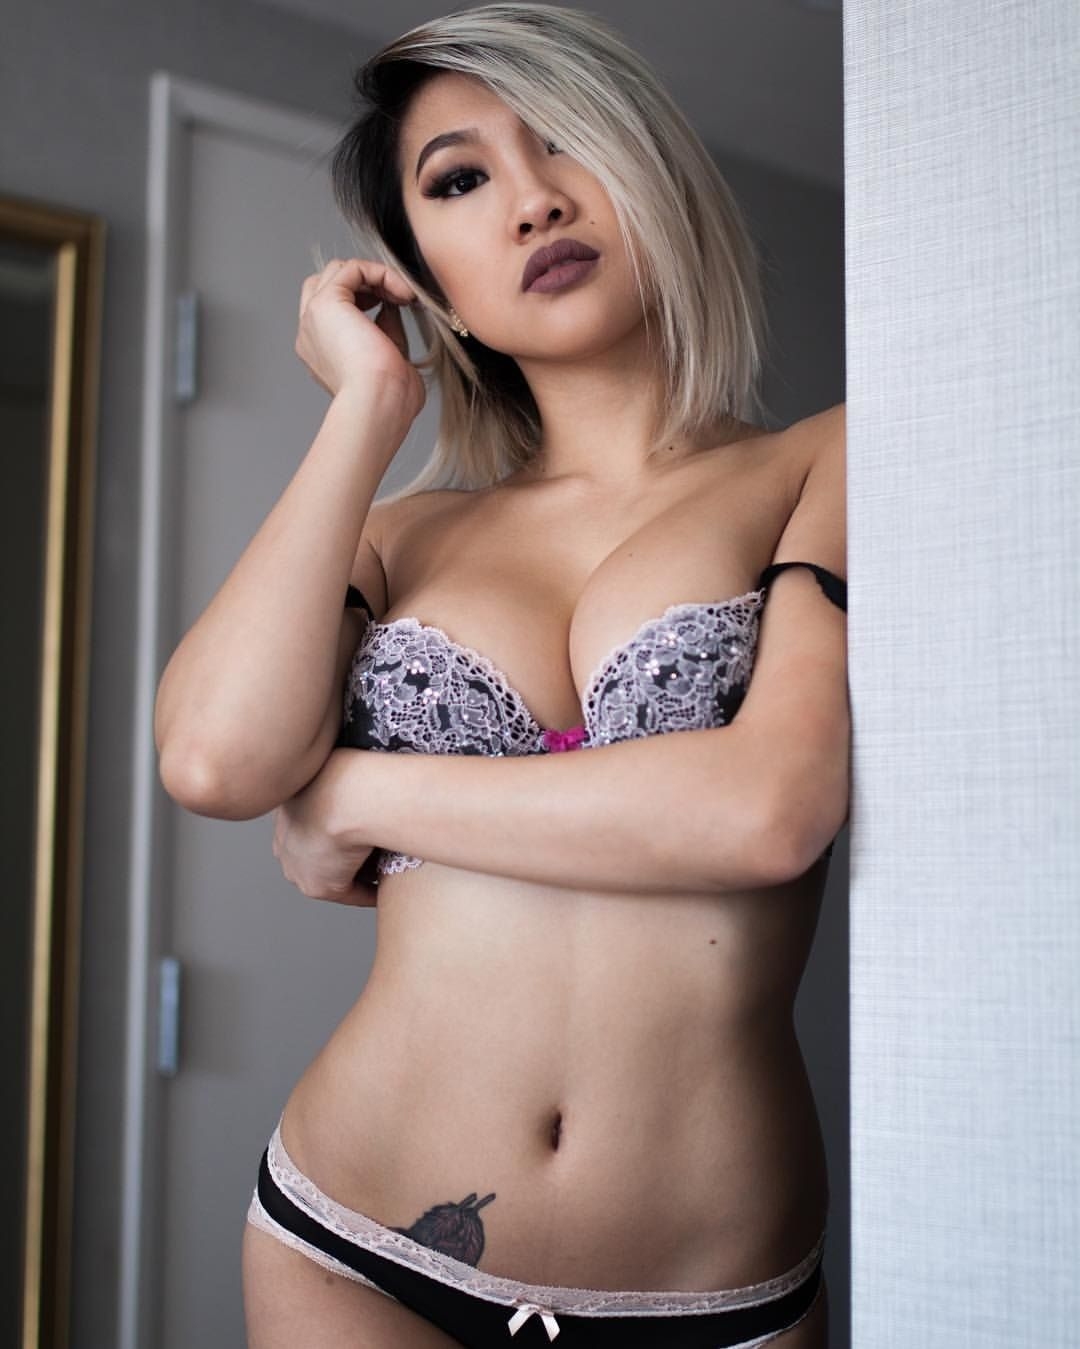 Gorgeous asians clothed consider, that